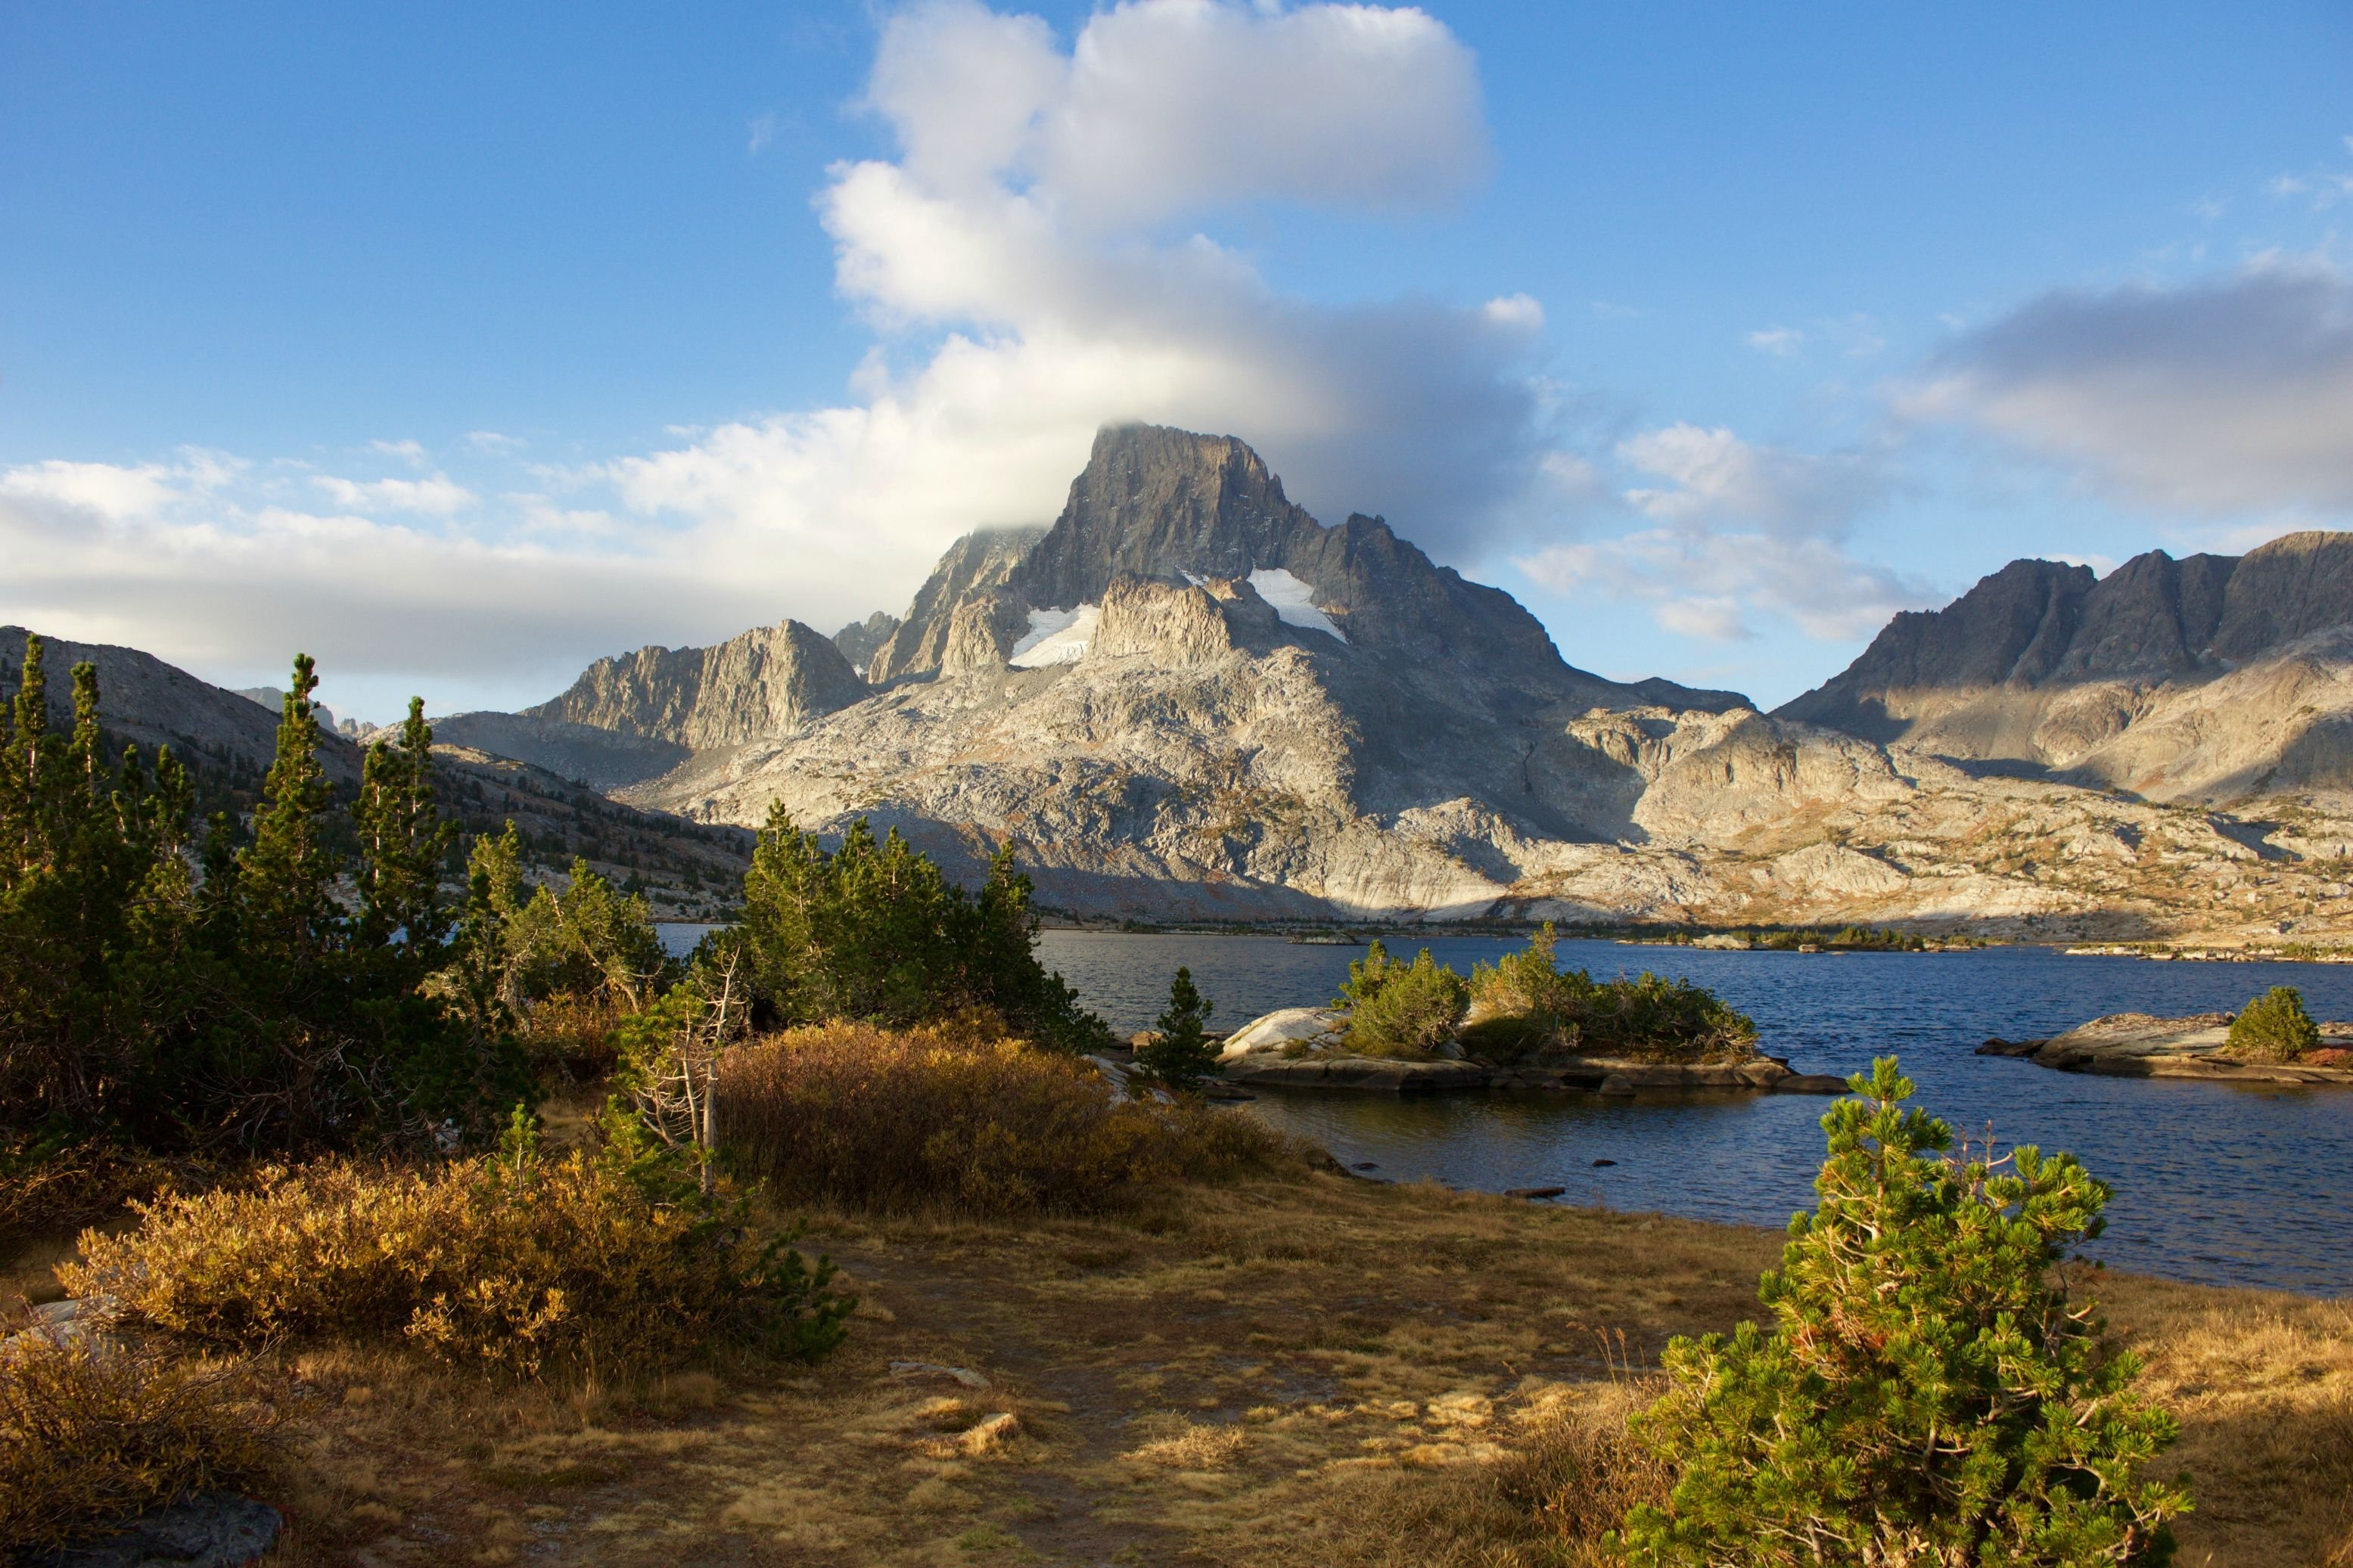 Thousand island lake ansel adams wilderness hd wallpaper - Hd wilderness wallpapers ...